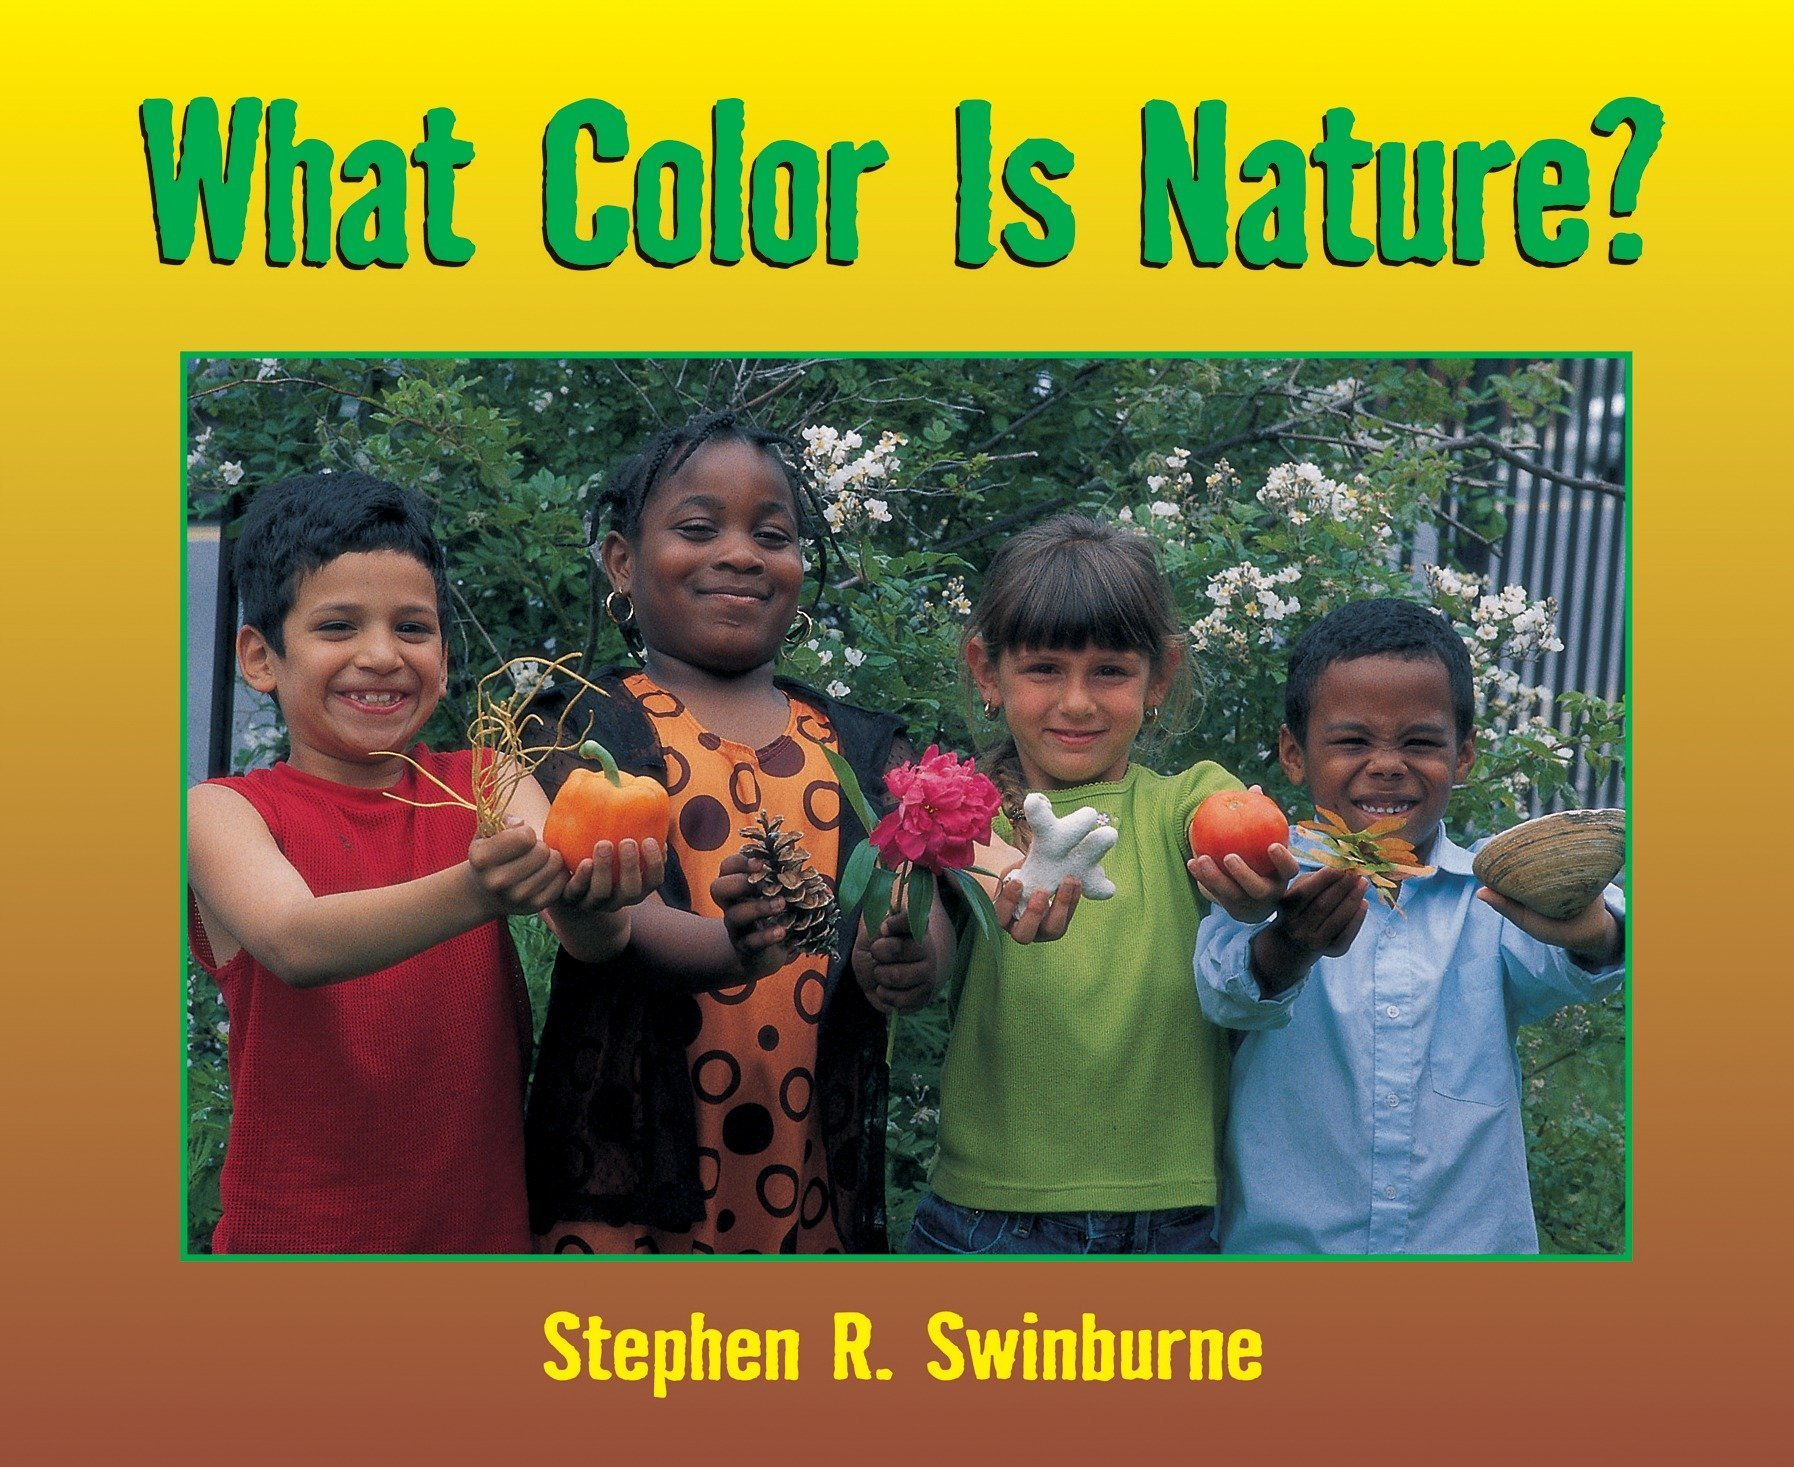 What Color Is Nature ebook by stephen r. swinburne